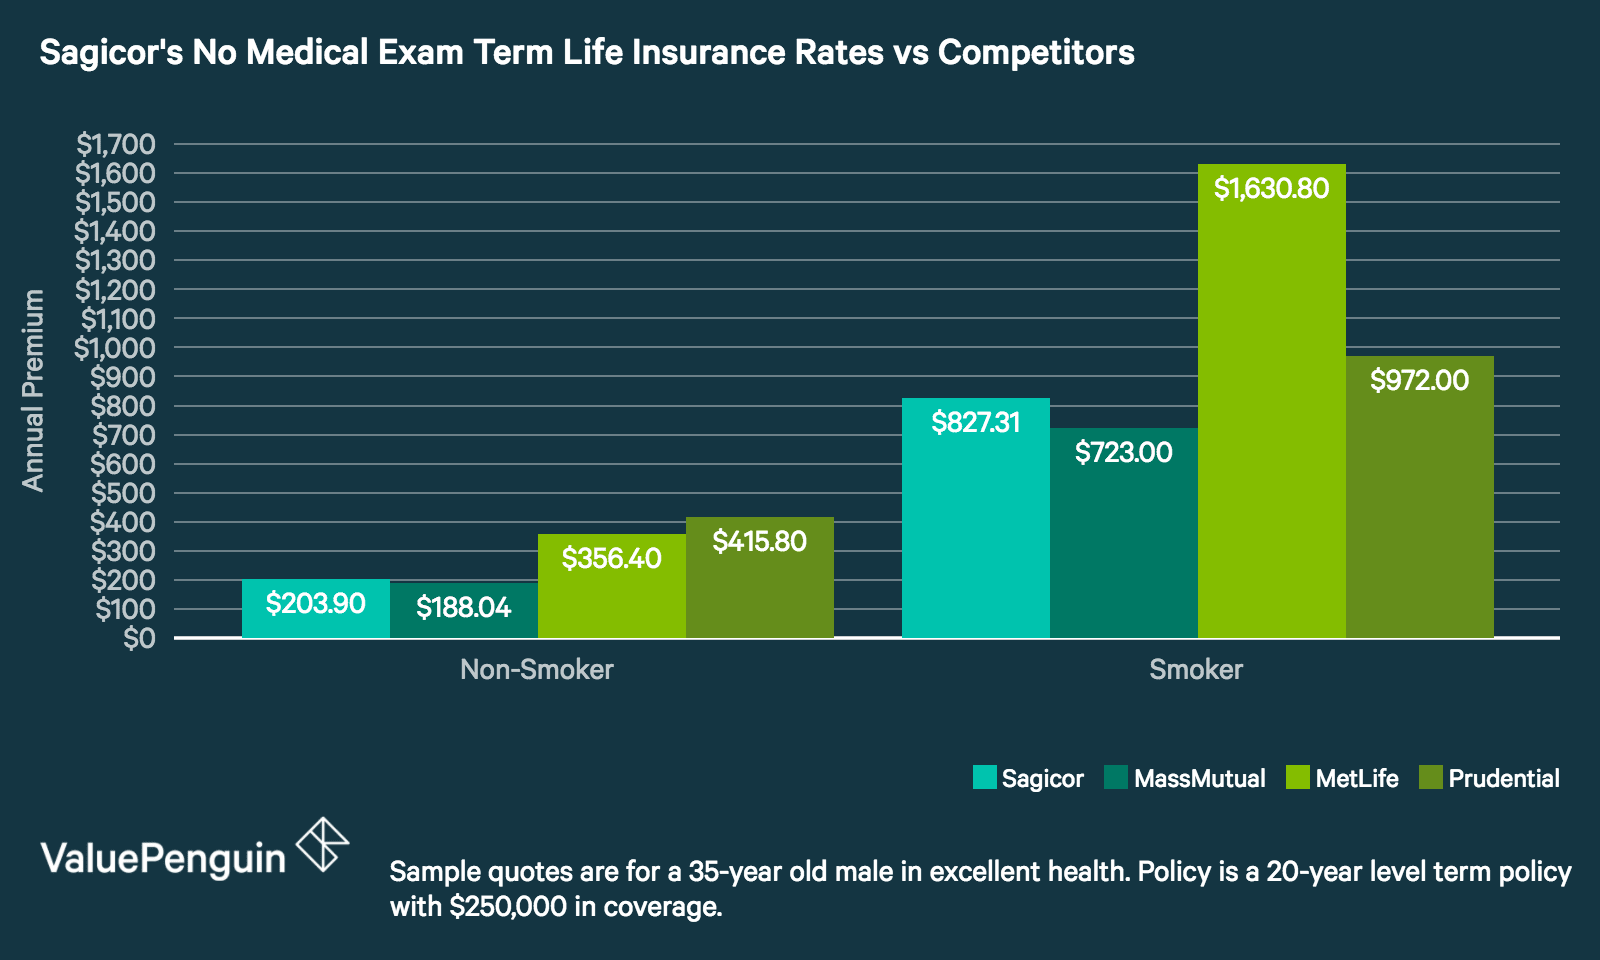 Term Life Insurance No Medical Exam Online Quote Captivating Sagicor Life Insurance Review Great Reviews And Variety Of